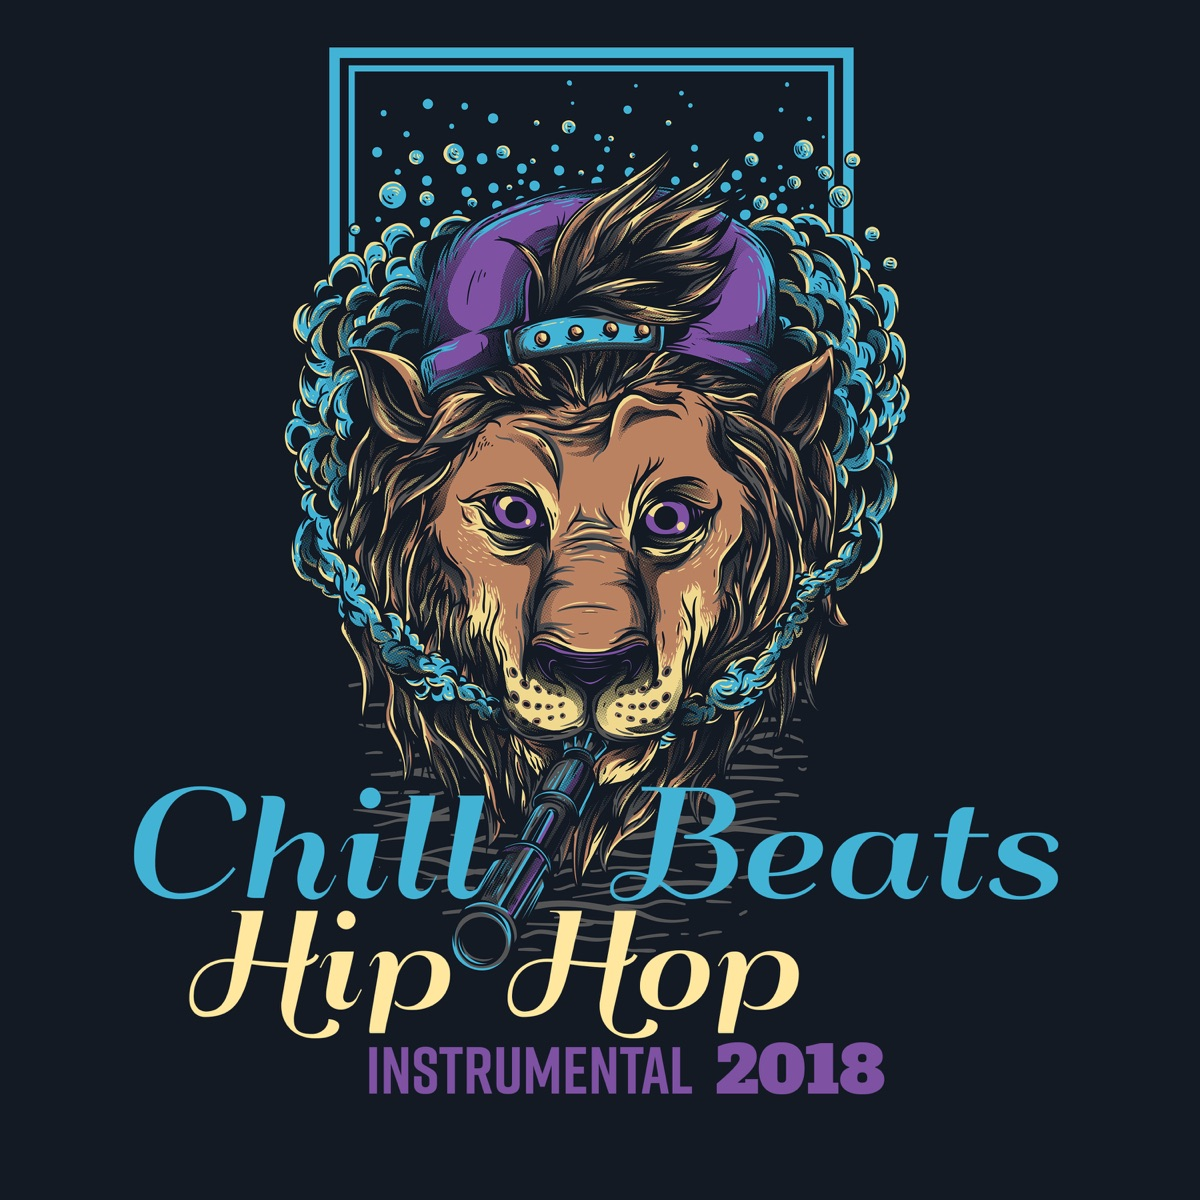 Chill Beats Hip Hop Instrumental 2018 Album Cover by Cool